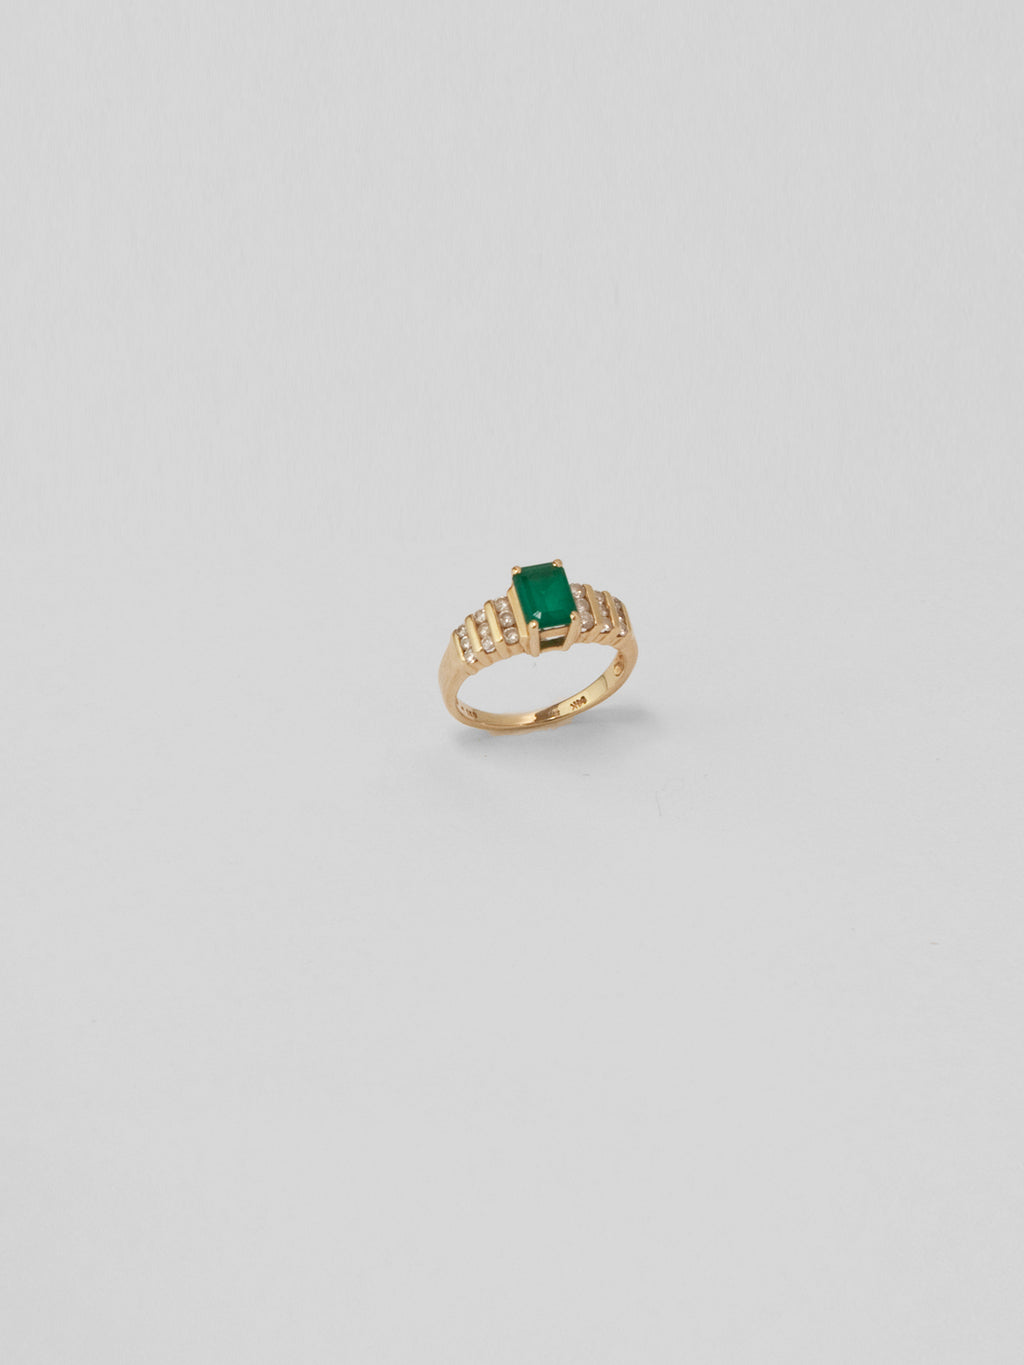 Emerald Cut Emerald And Diamond Ring / 14Kt Yellow Gold